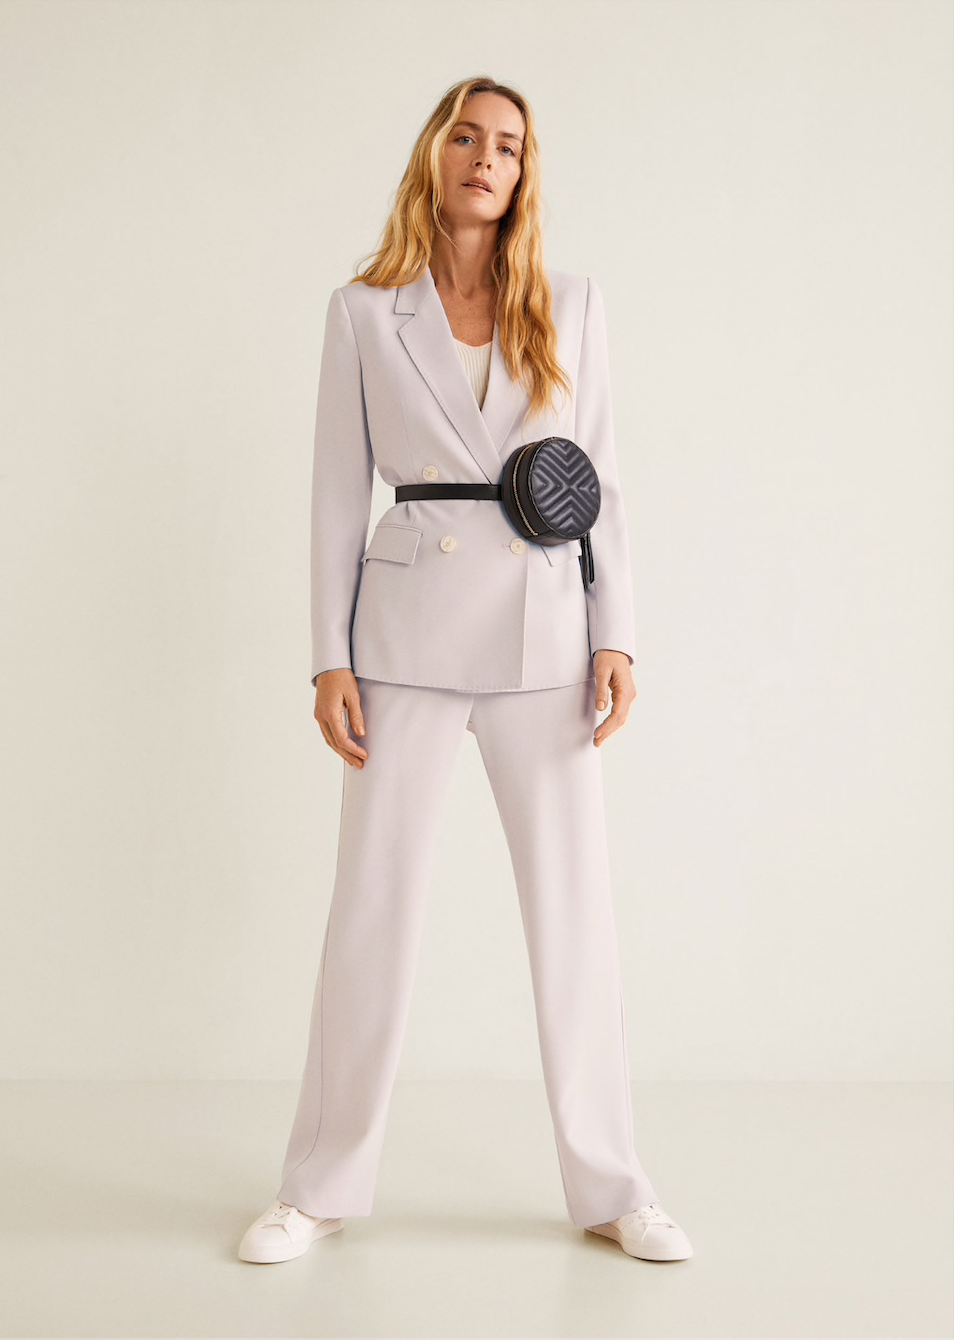 MANGO lilac suit jacket, $149.95    MANGO lilac suit pants, $99.95